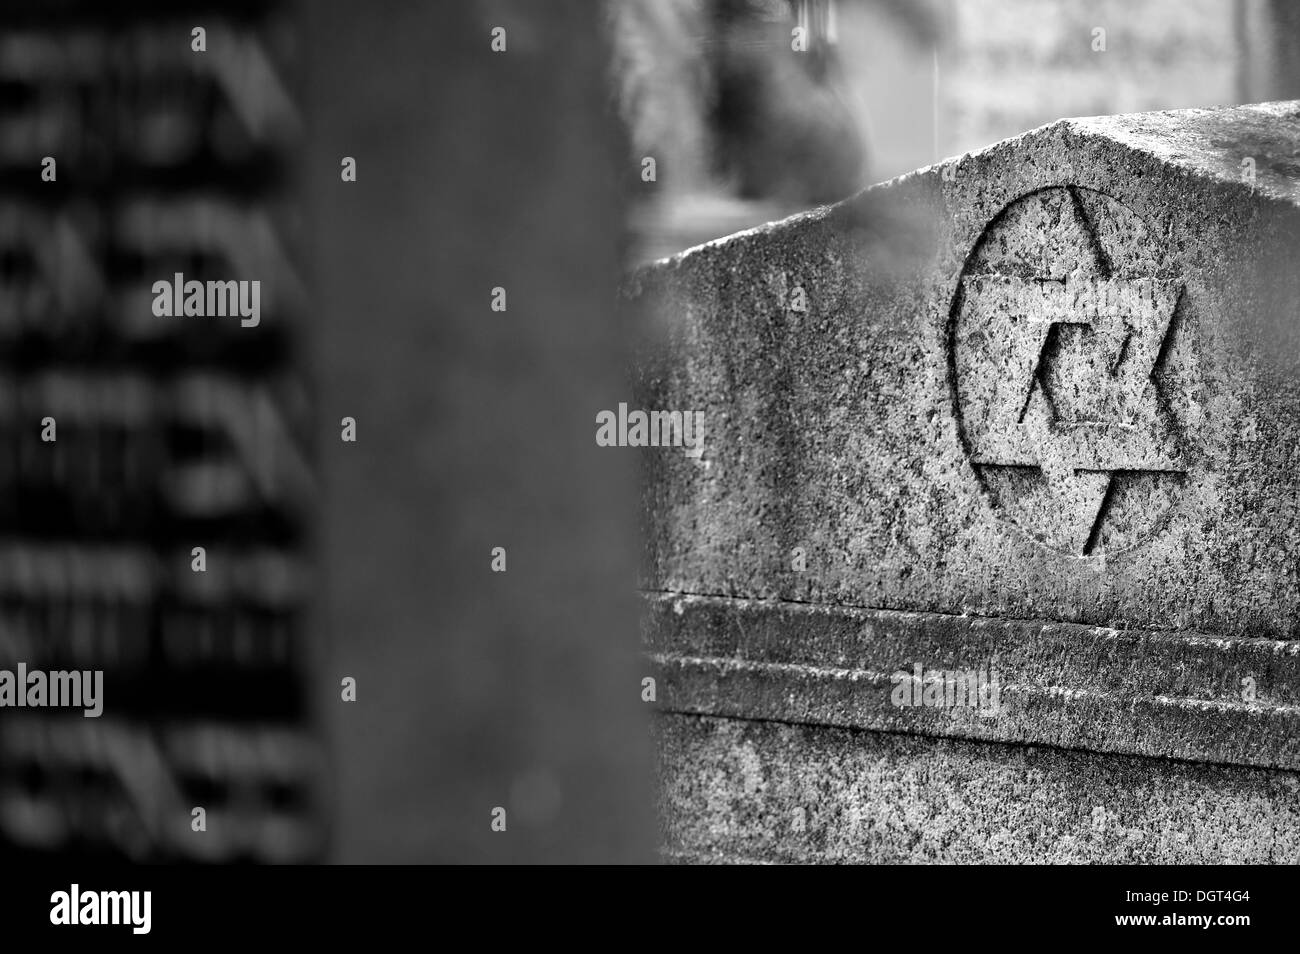 Star of David on a headstone at the third Jewish cemetery of 1897, Schnaittach, Middle Franconia, Bavaria - Stock Image